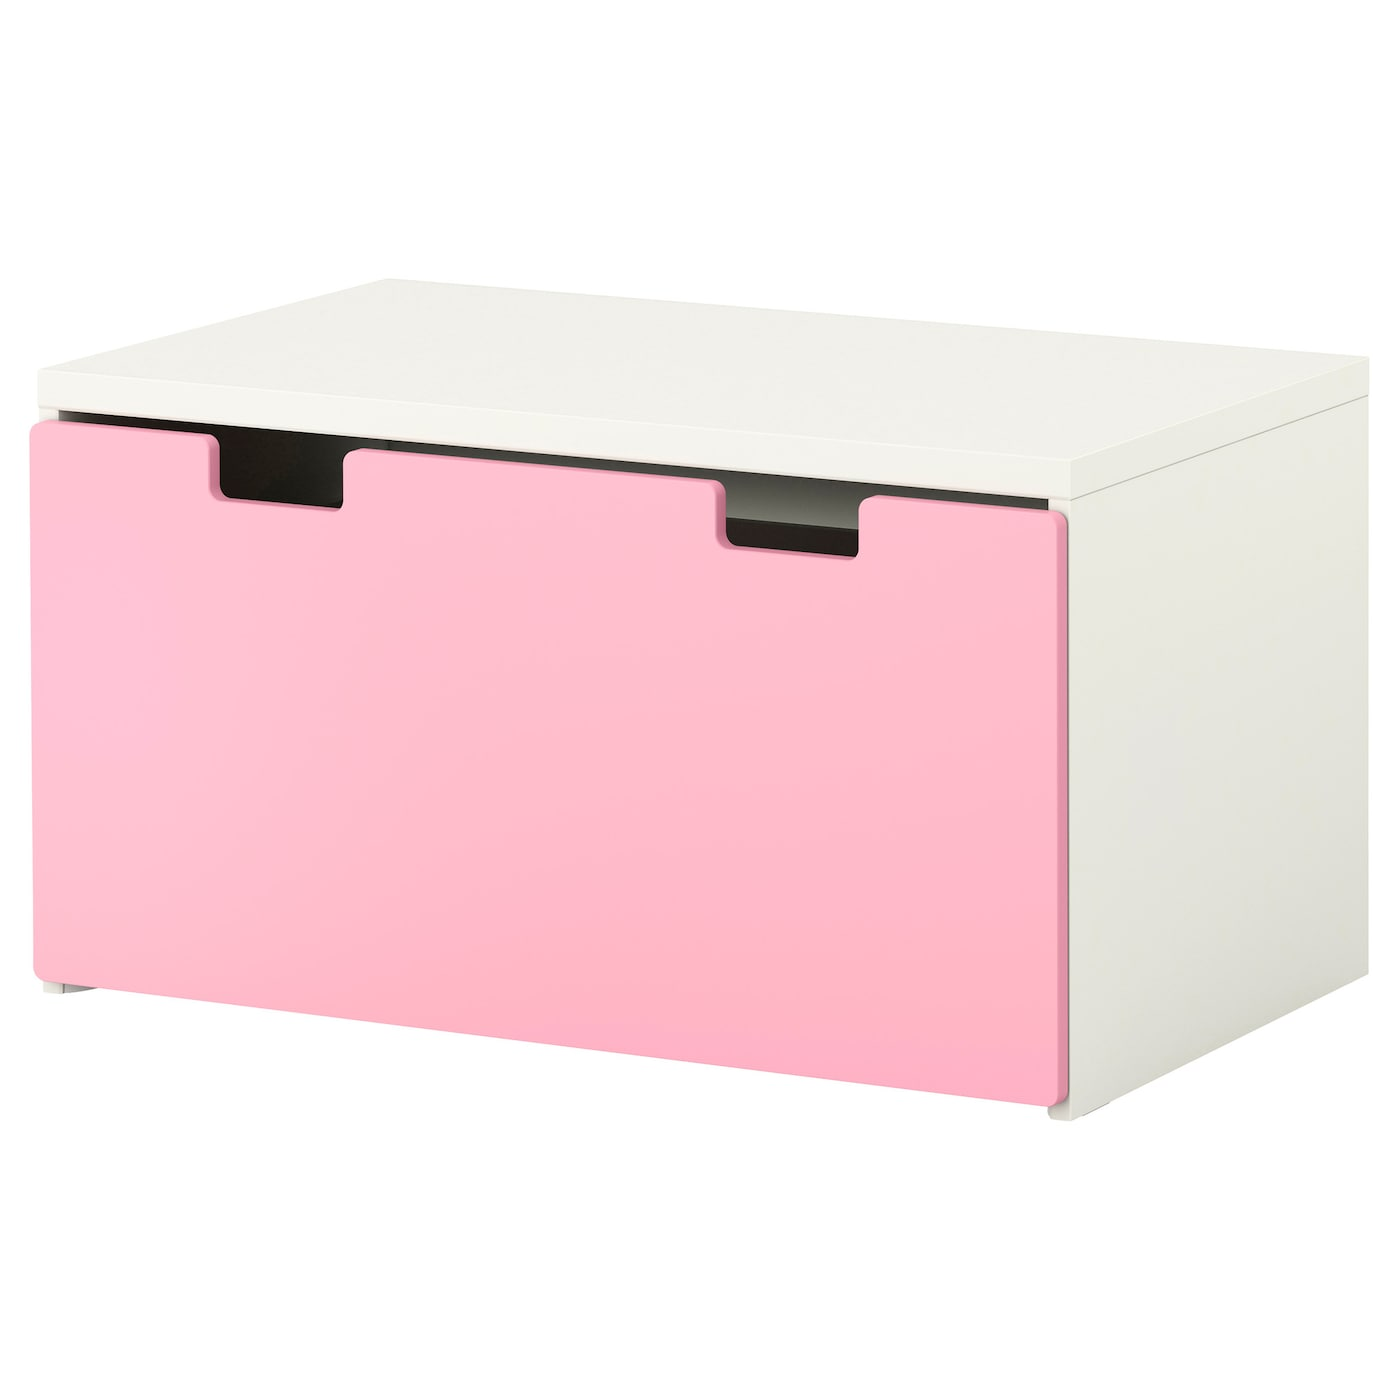 stuva storage bench white pink 90x50x50 cm ikea. Black Bedroom Furniture Sets. Home Design Ideas